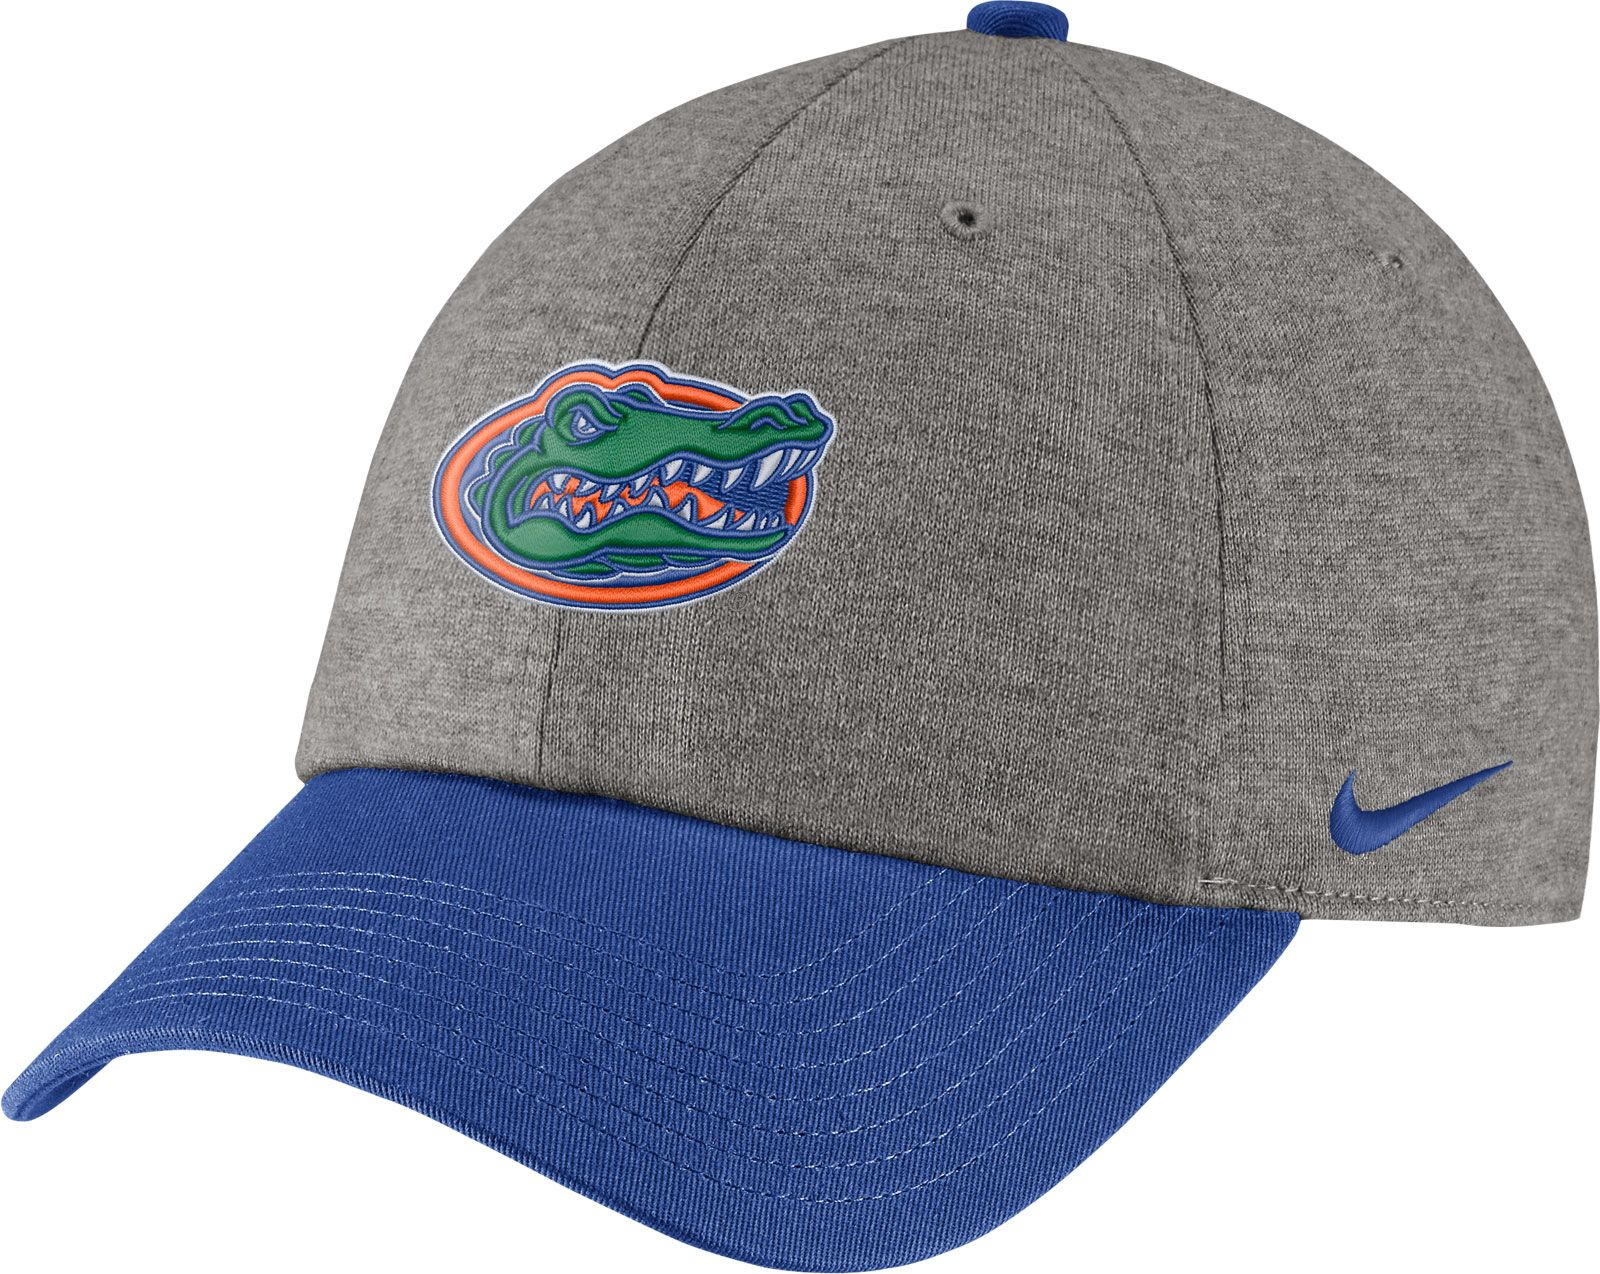 3e5ed801372 ... italy nike mens florida gators grey blue heritage86 heather adjustable  hat c4d8a 2bcf6